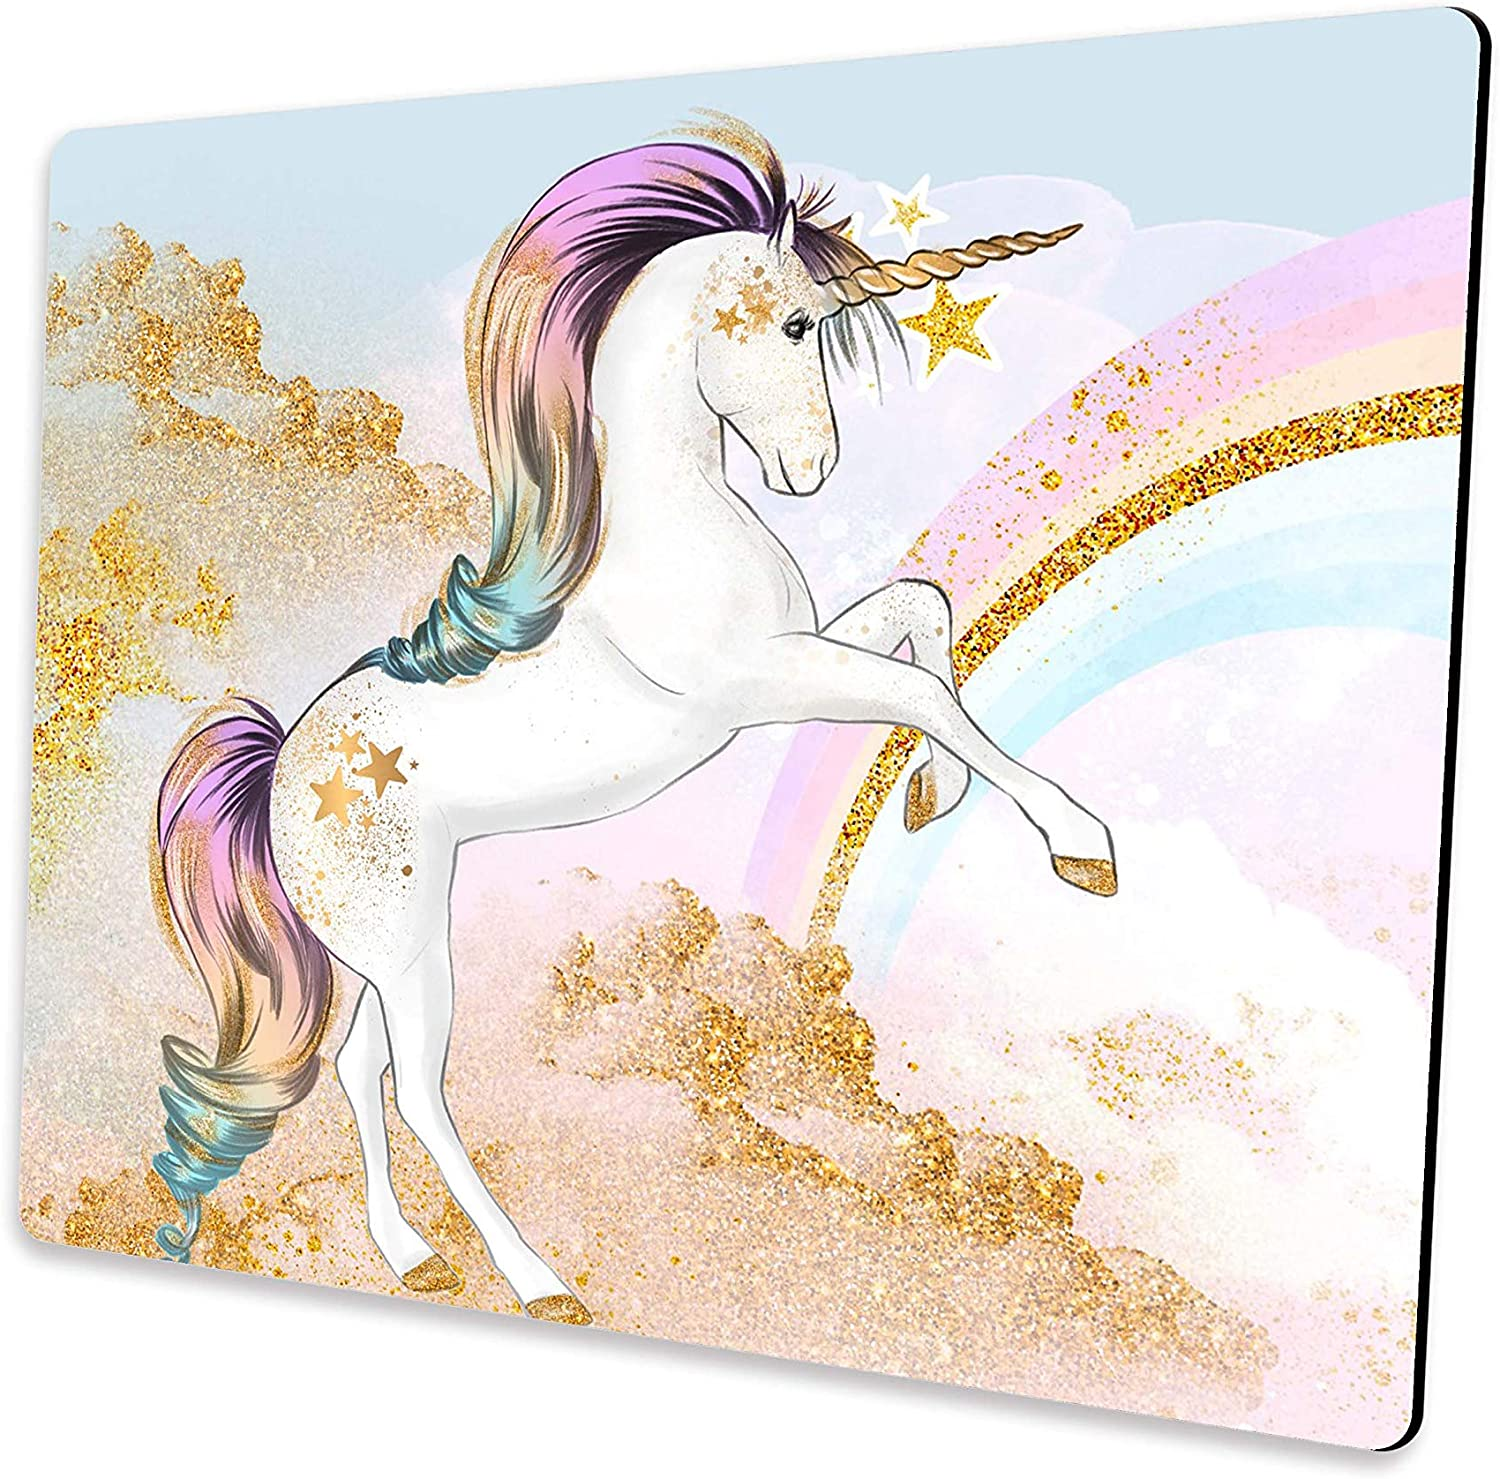 Pink Unicorn Mouse Pad, Art Golden Rainbow Mousepad, Computer Mousepads with Non-Slip Rubber Base, Mouse Pads for Computers, Laptop, Office & Home, 9.5x7.9x0.125 Inch